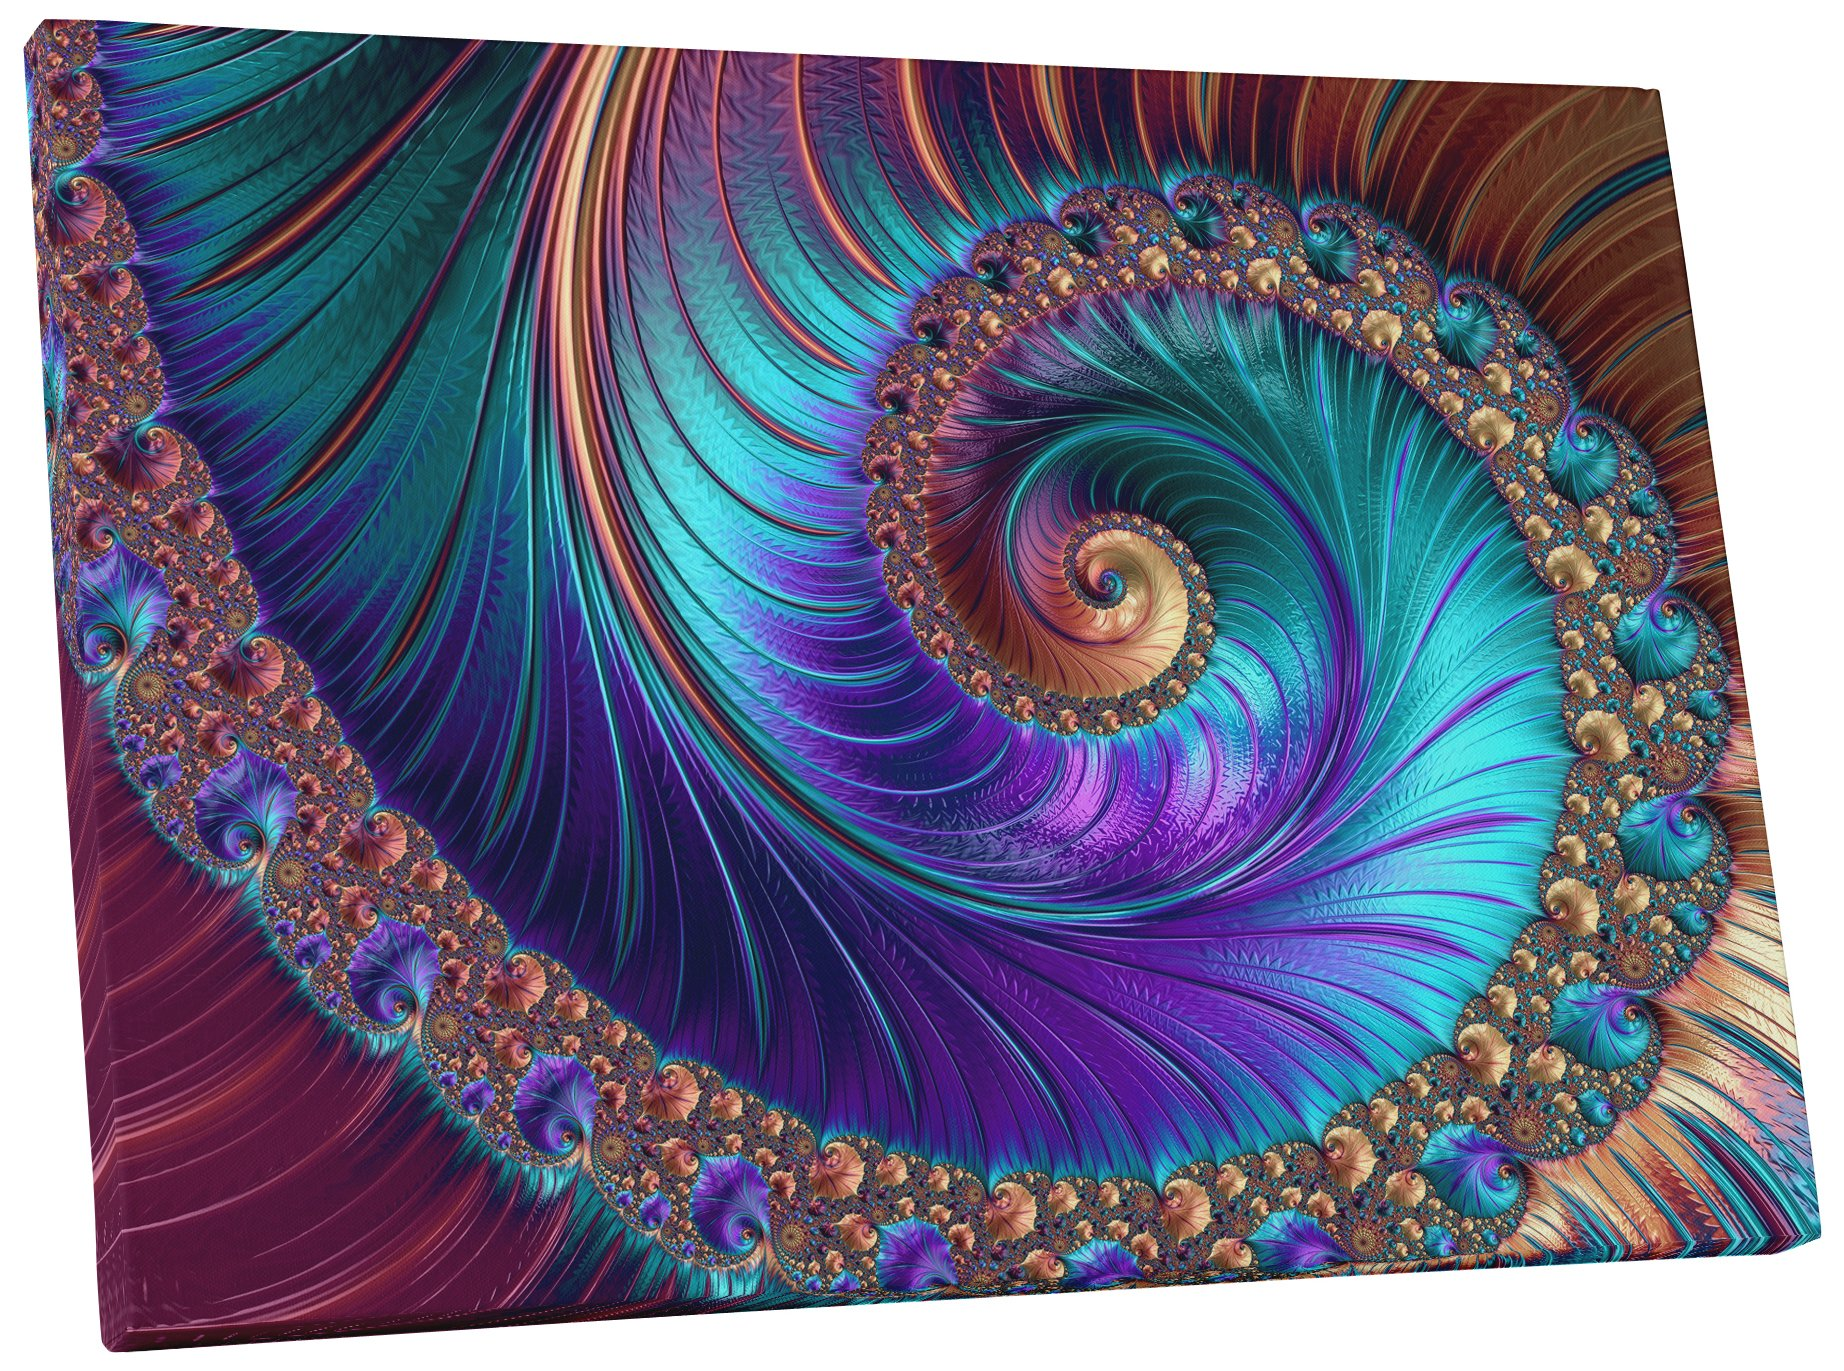 Pingo World 0719QSRRTTA ''Peacock-esque Spiral Abstract'' Gallery Wrapped Canvas Wall Art, 30'' x 45'' by Pingo World